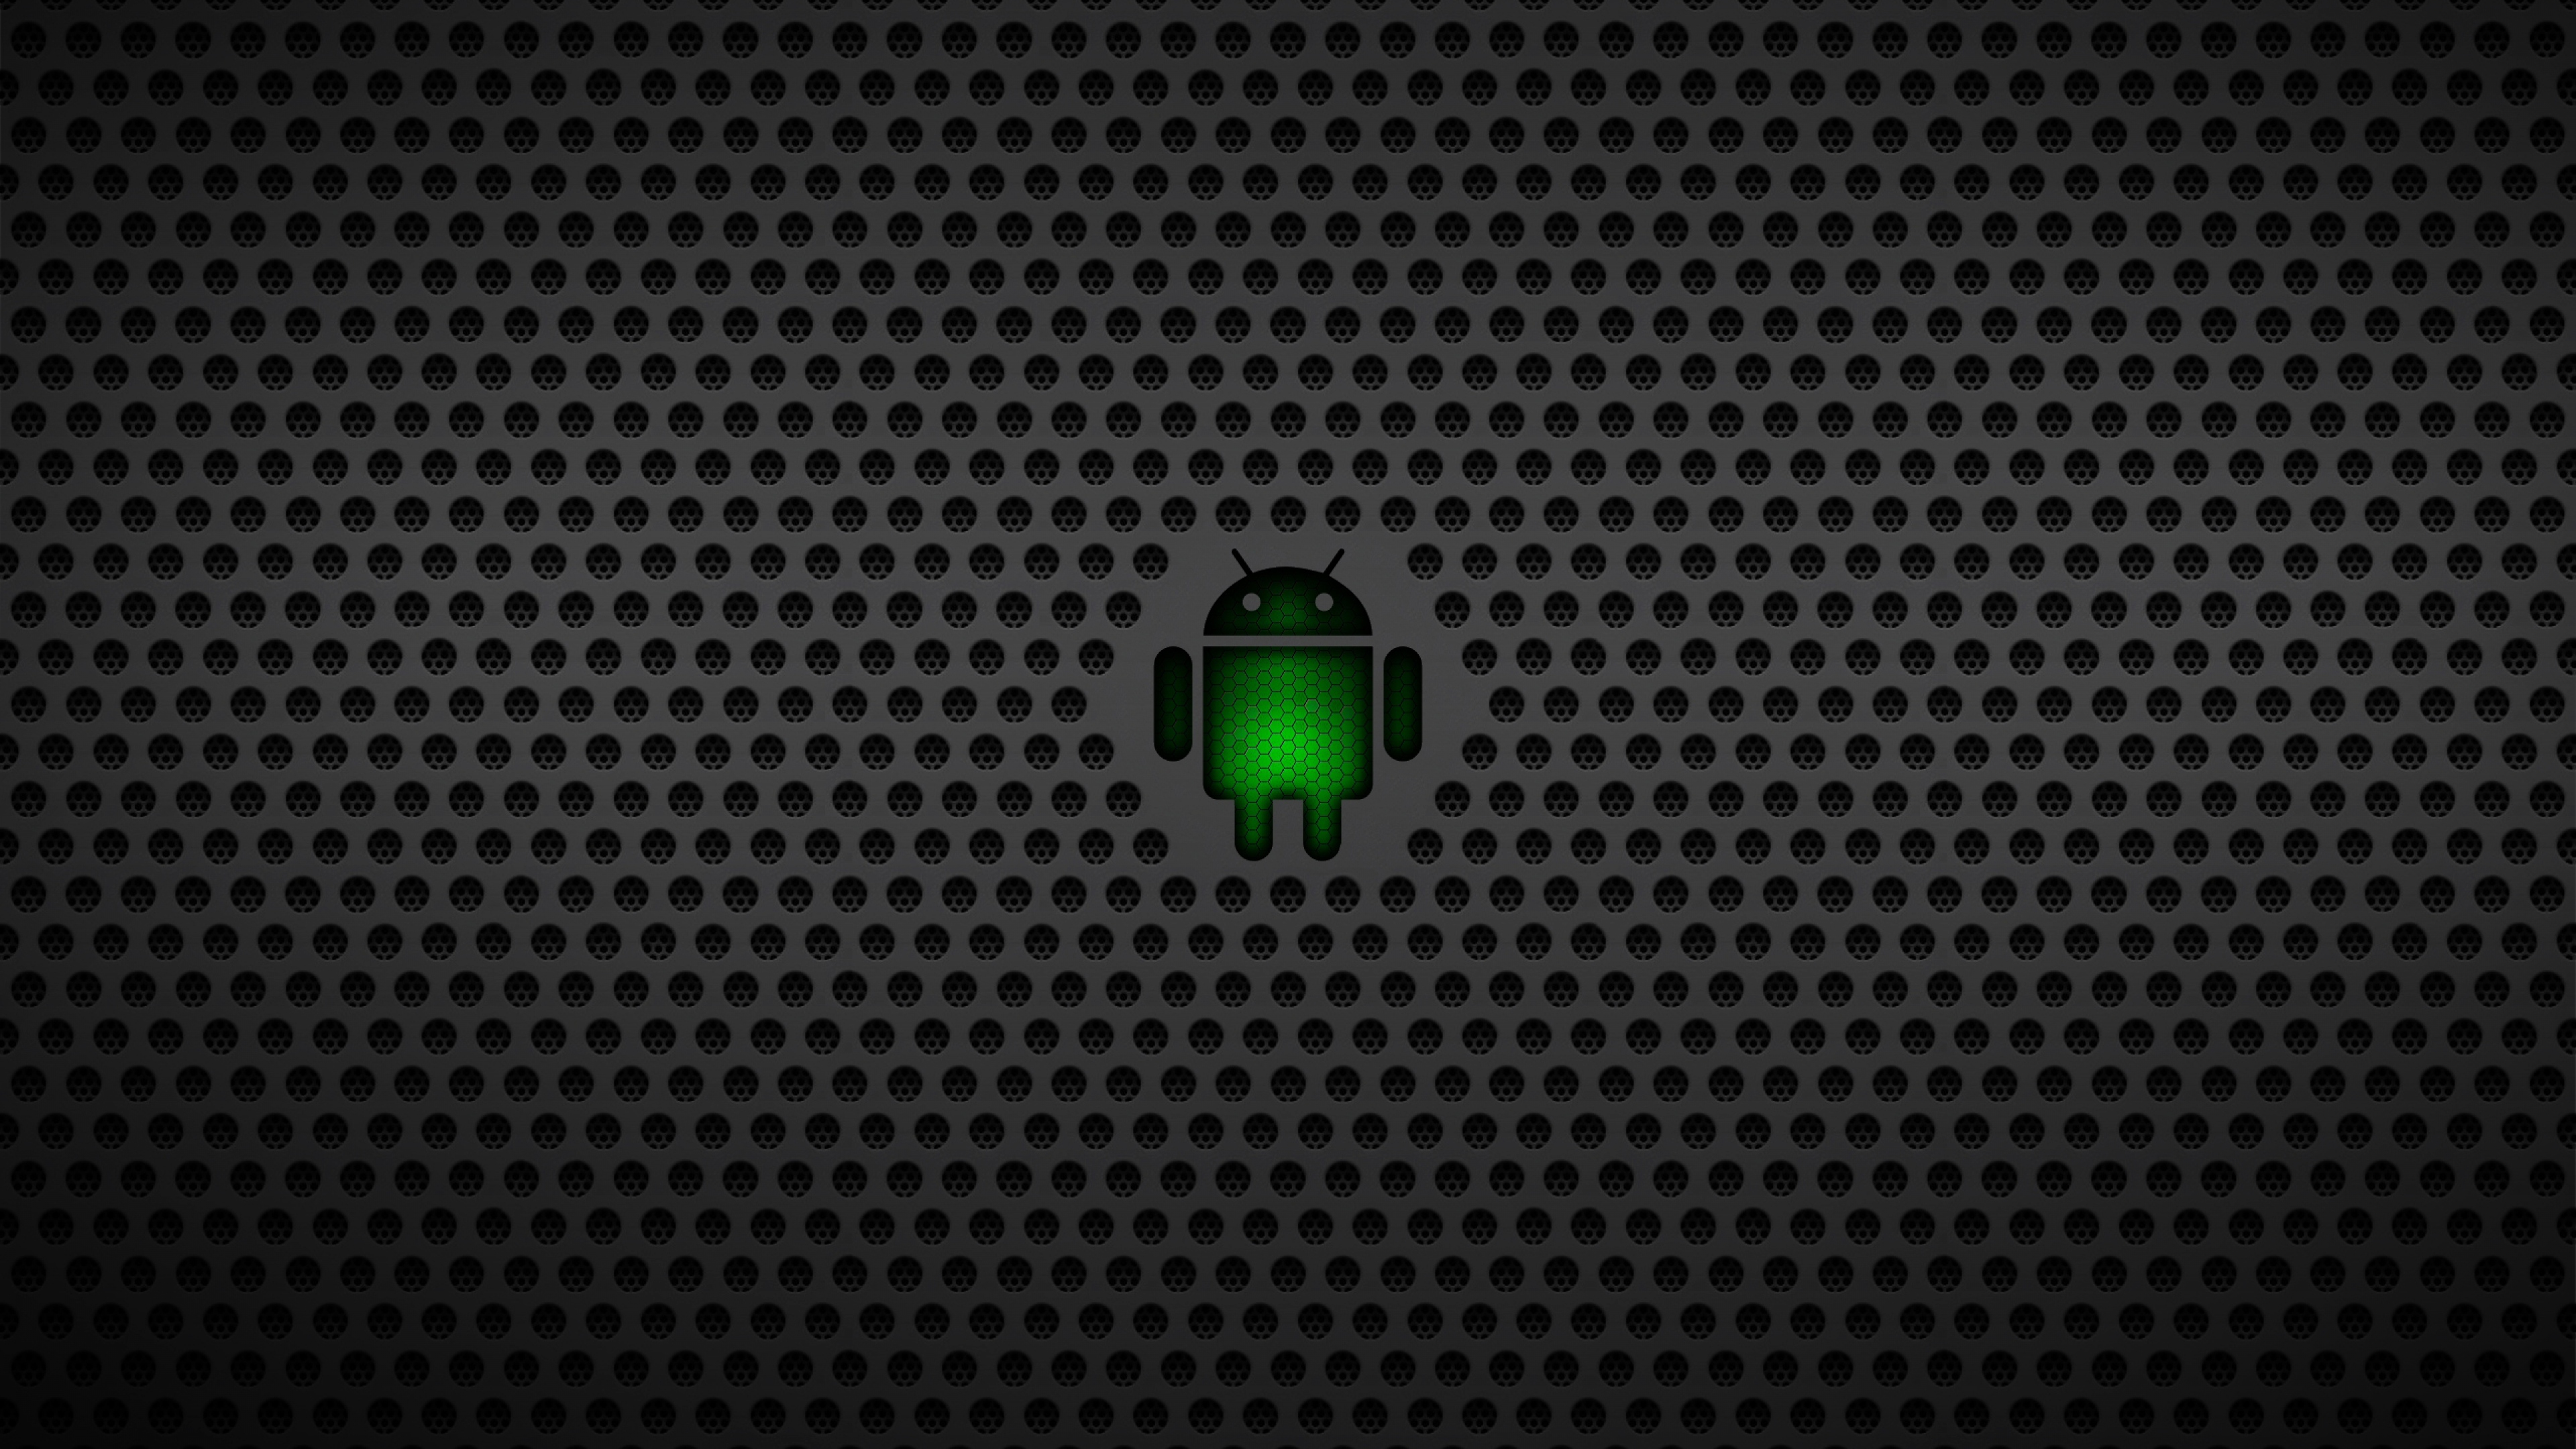 Ultra HD 3840x2160 Android Wallpaper - WallpaperSafari